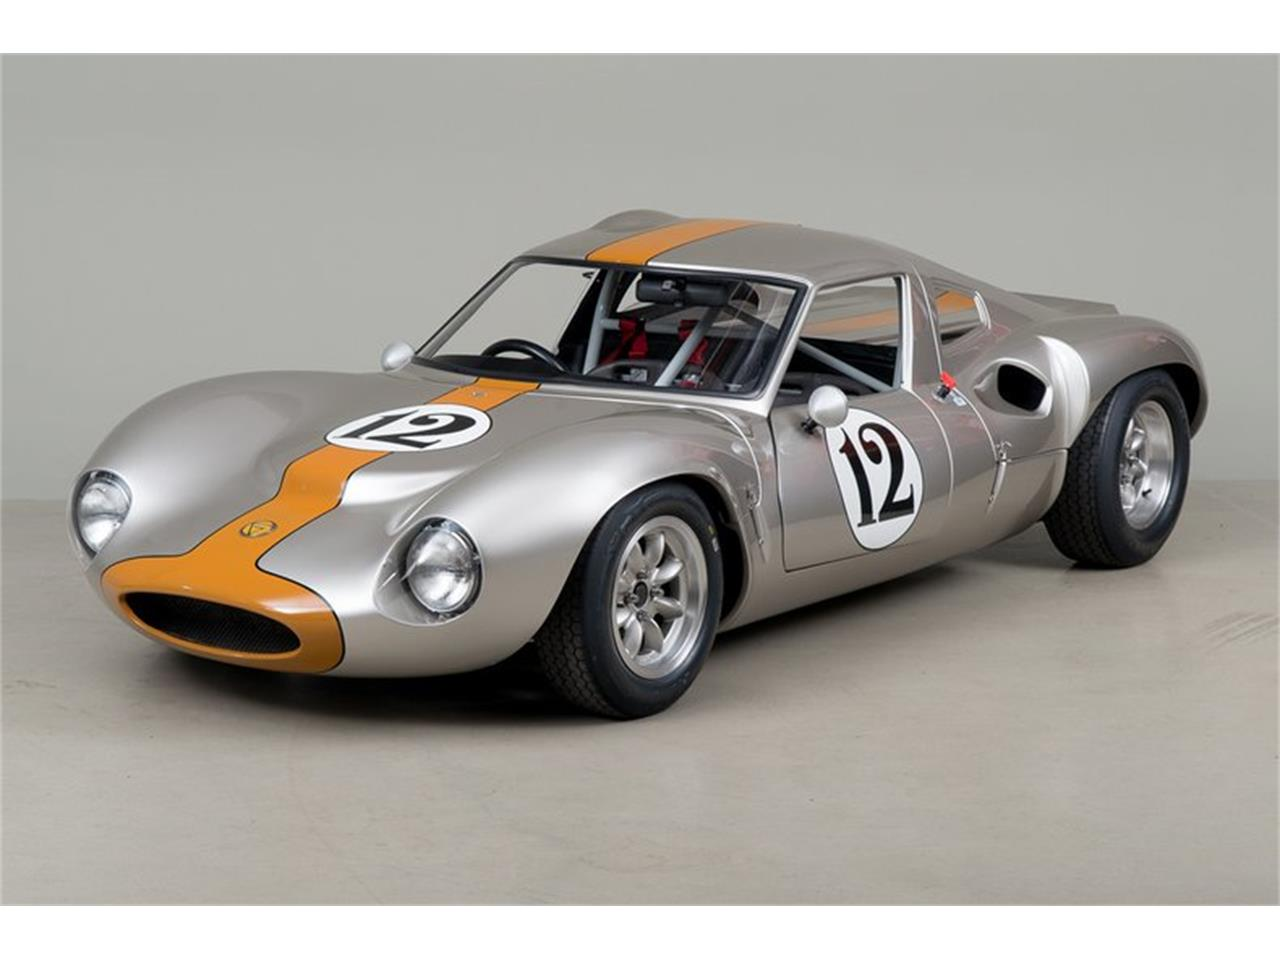 1967 Ginetta G12 for sale in Scotts Valley, CA